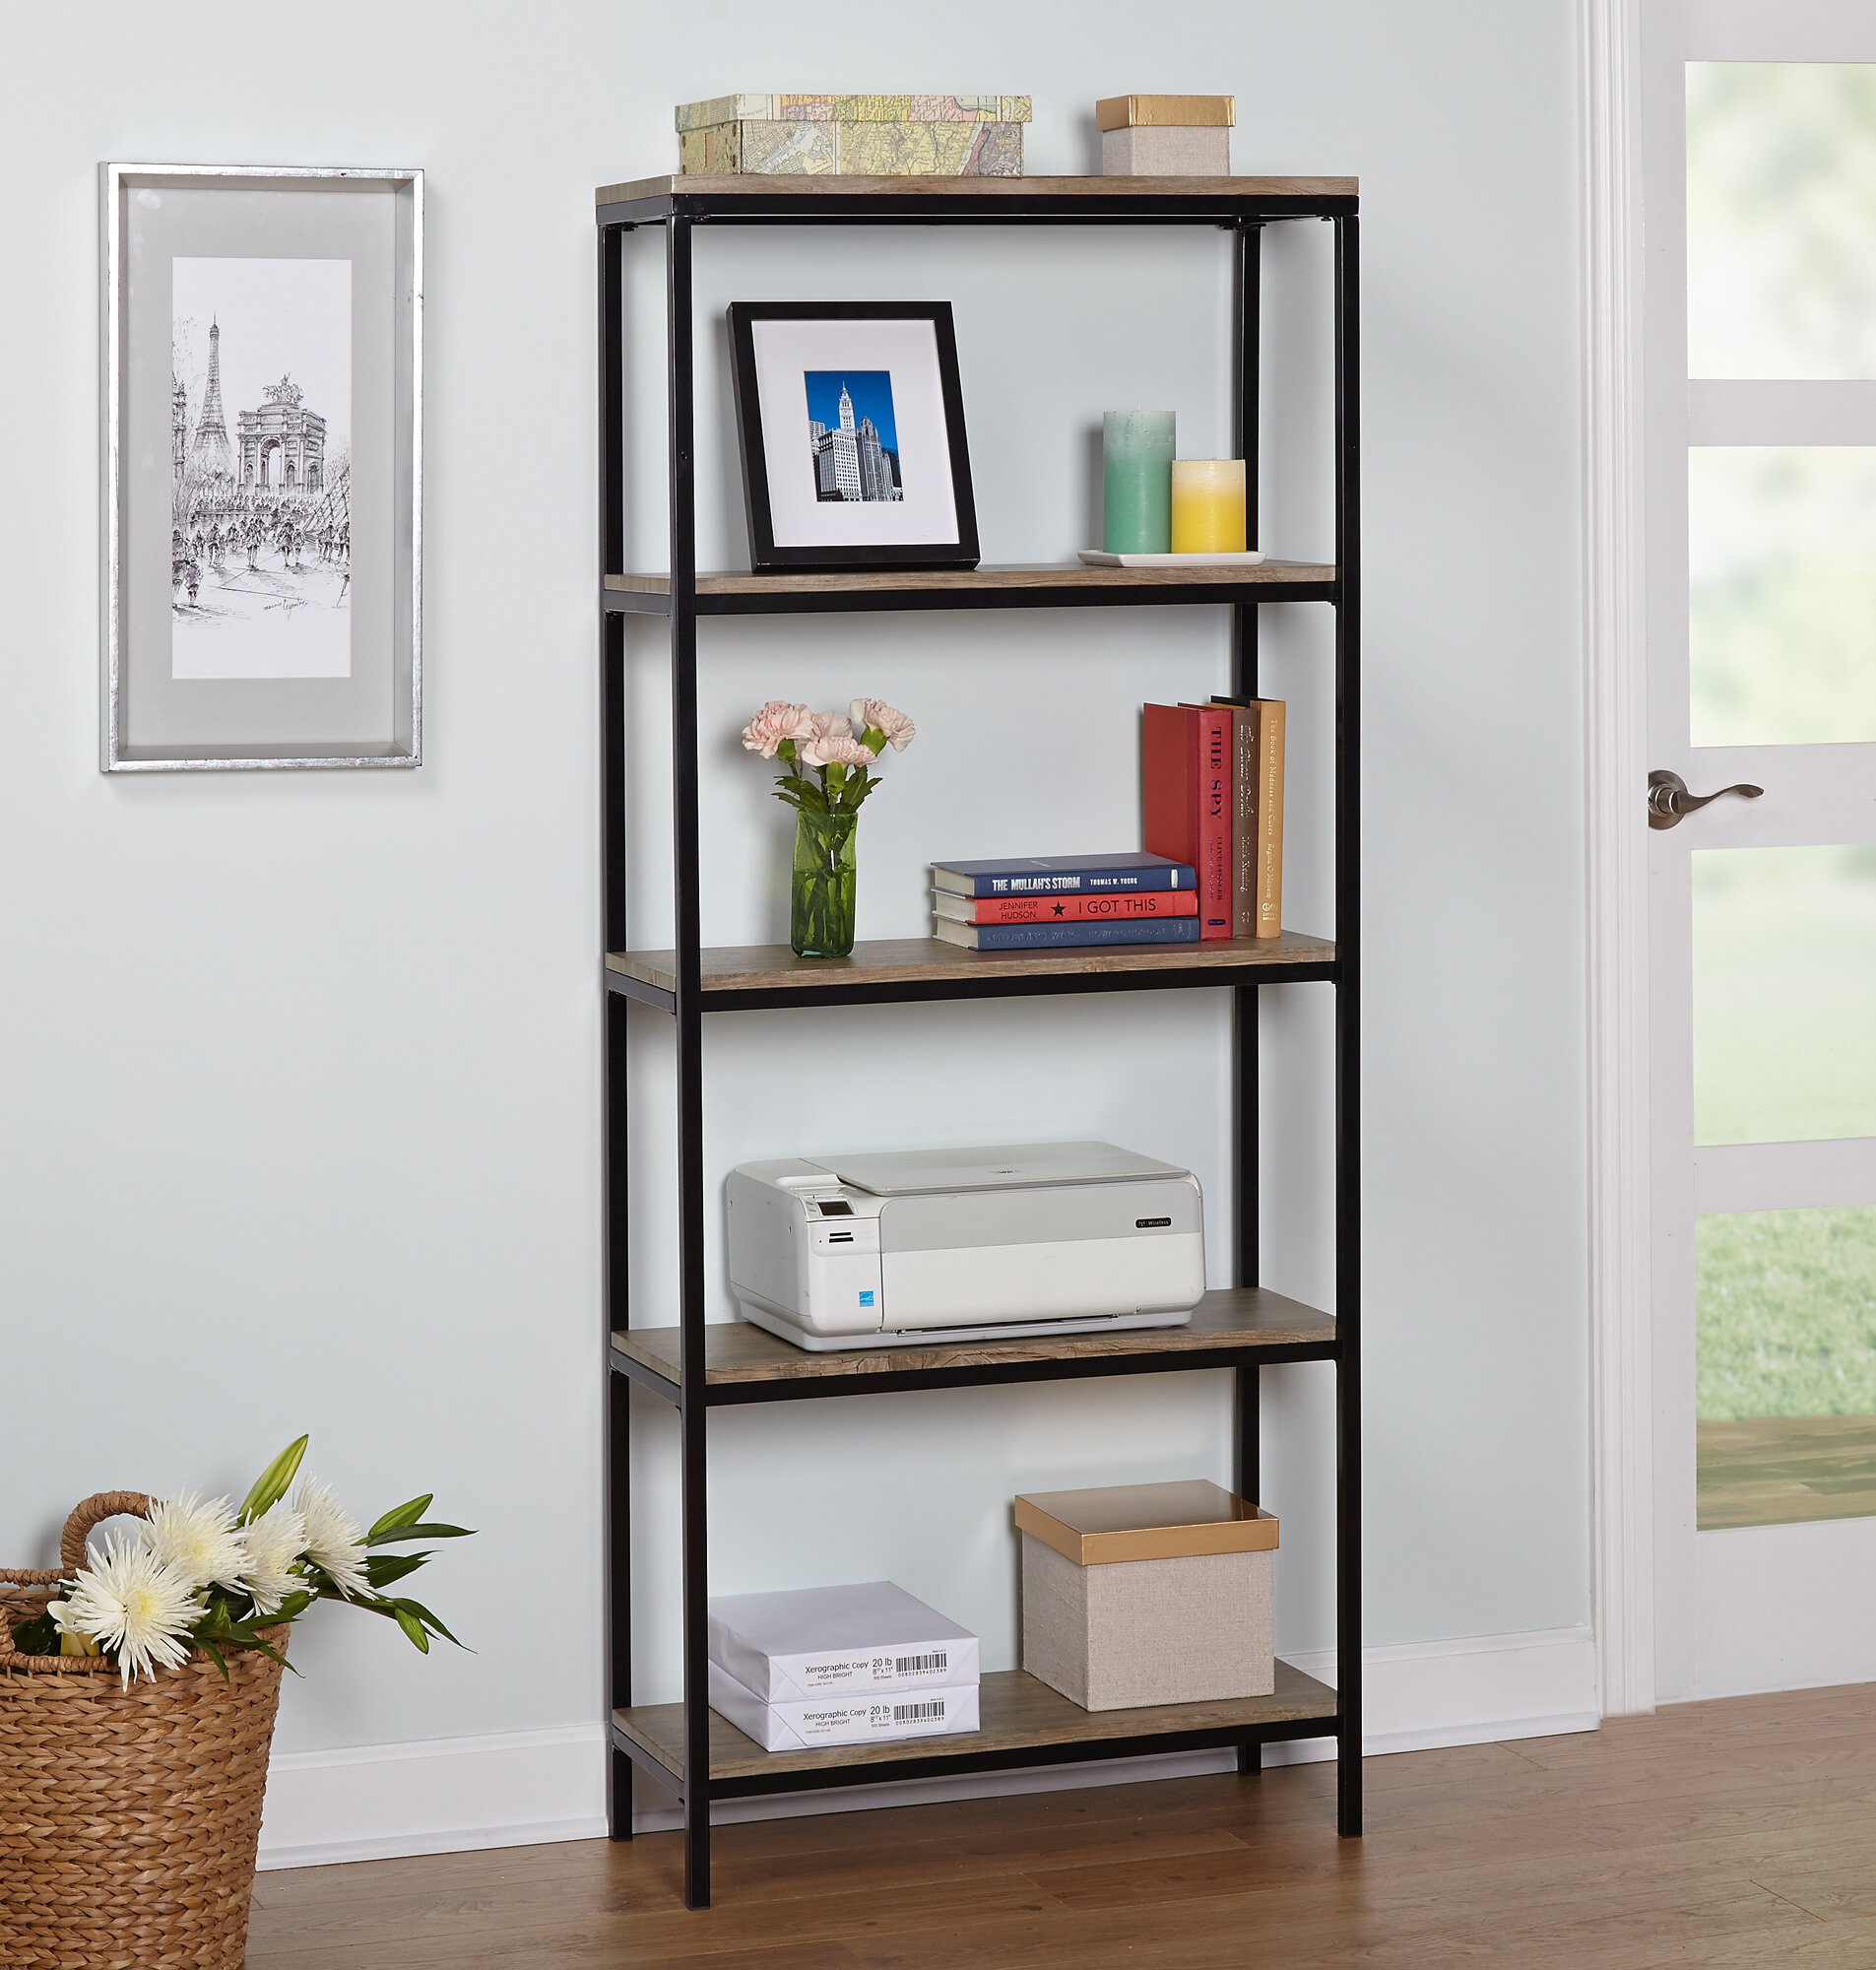 Laurel Foundry Modern Farmhouse Forteau Etagere Bookcase & Reviews -